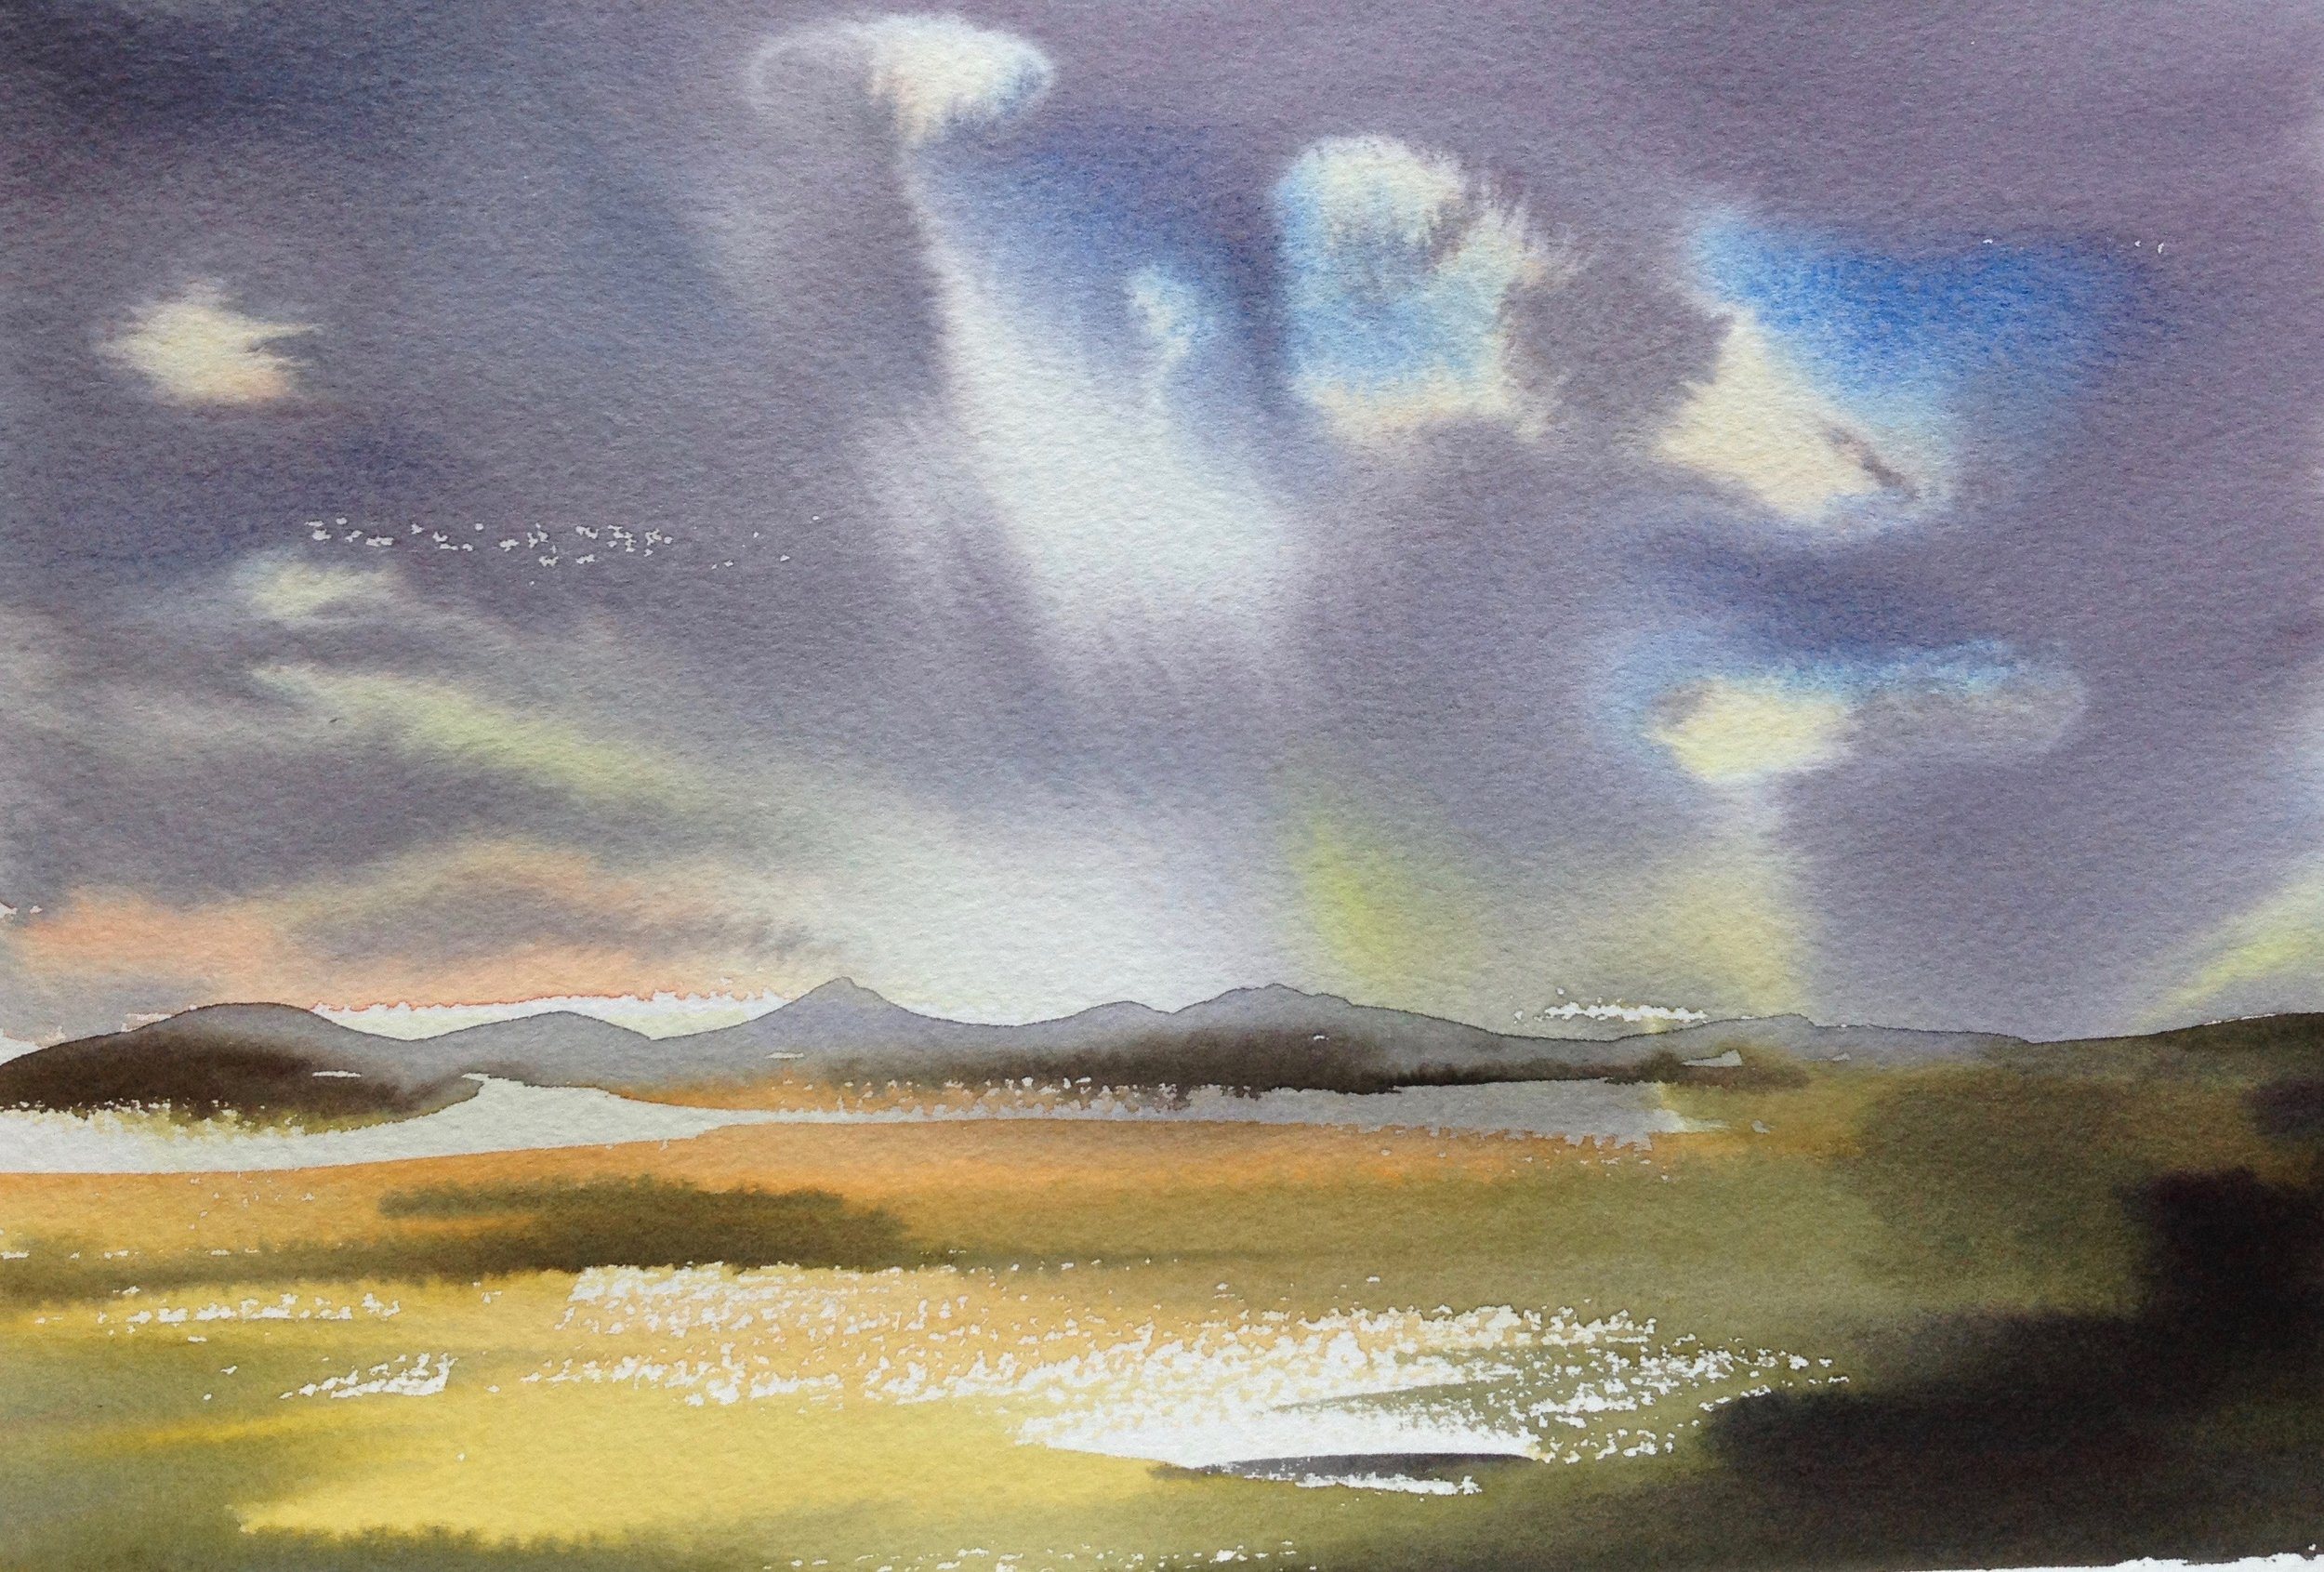 Evening Walk, Gartness - sold